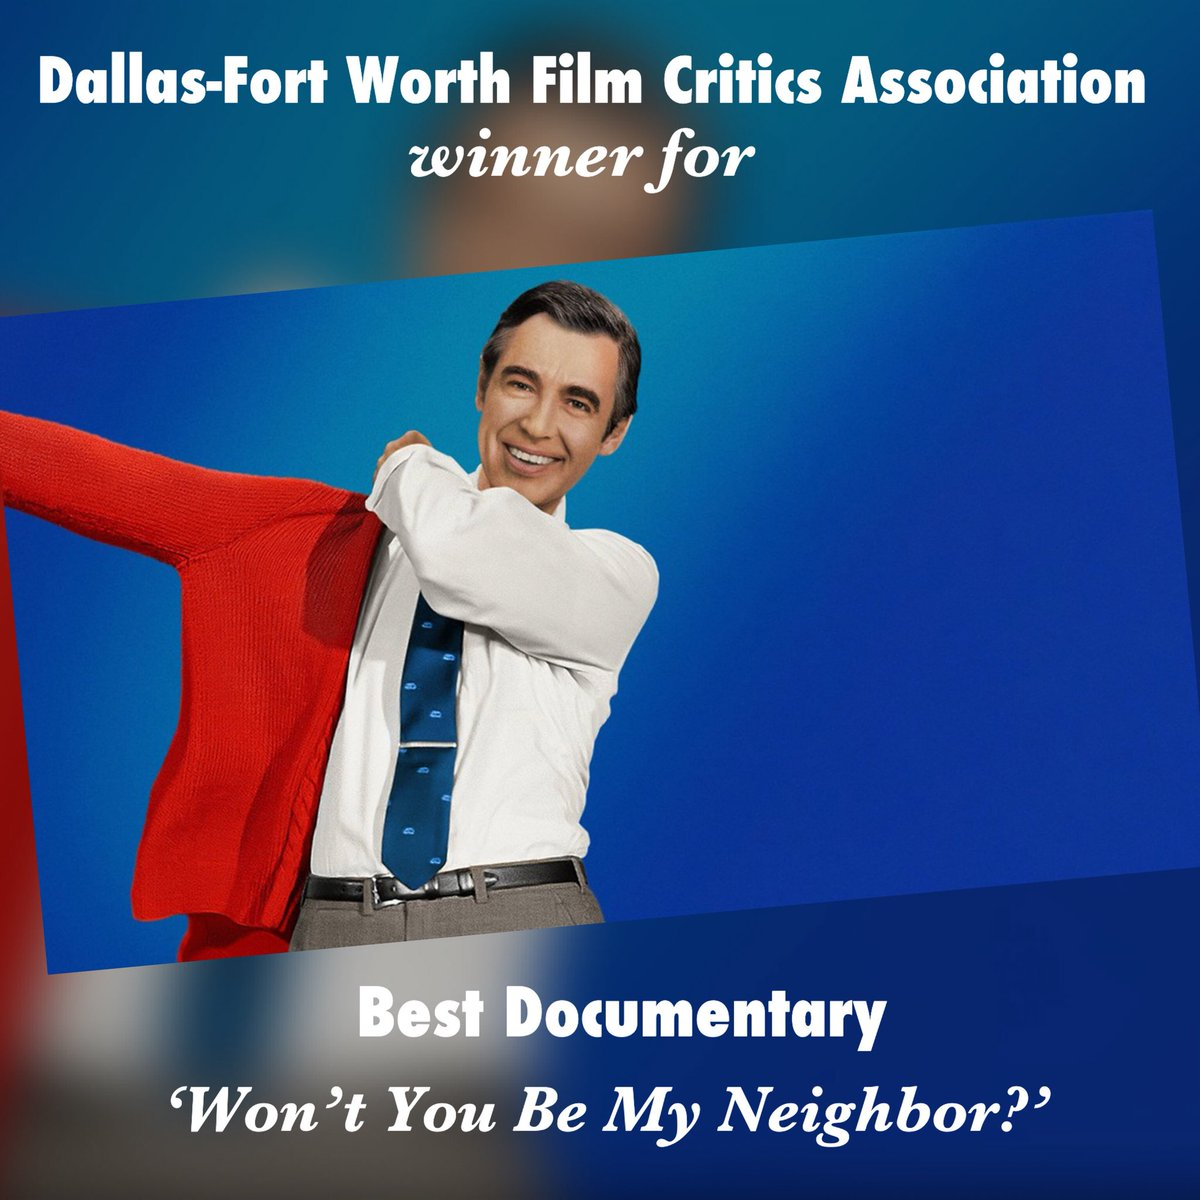 Best Documentary goes to WON'T YOU BE MY NEIGHBOR? #DFWFCAAwards